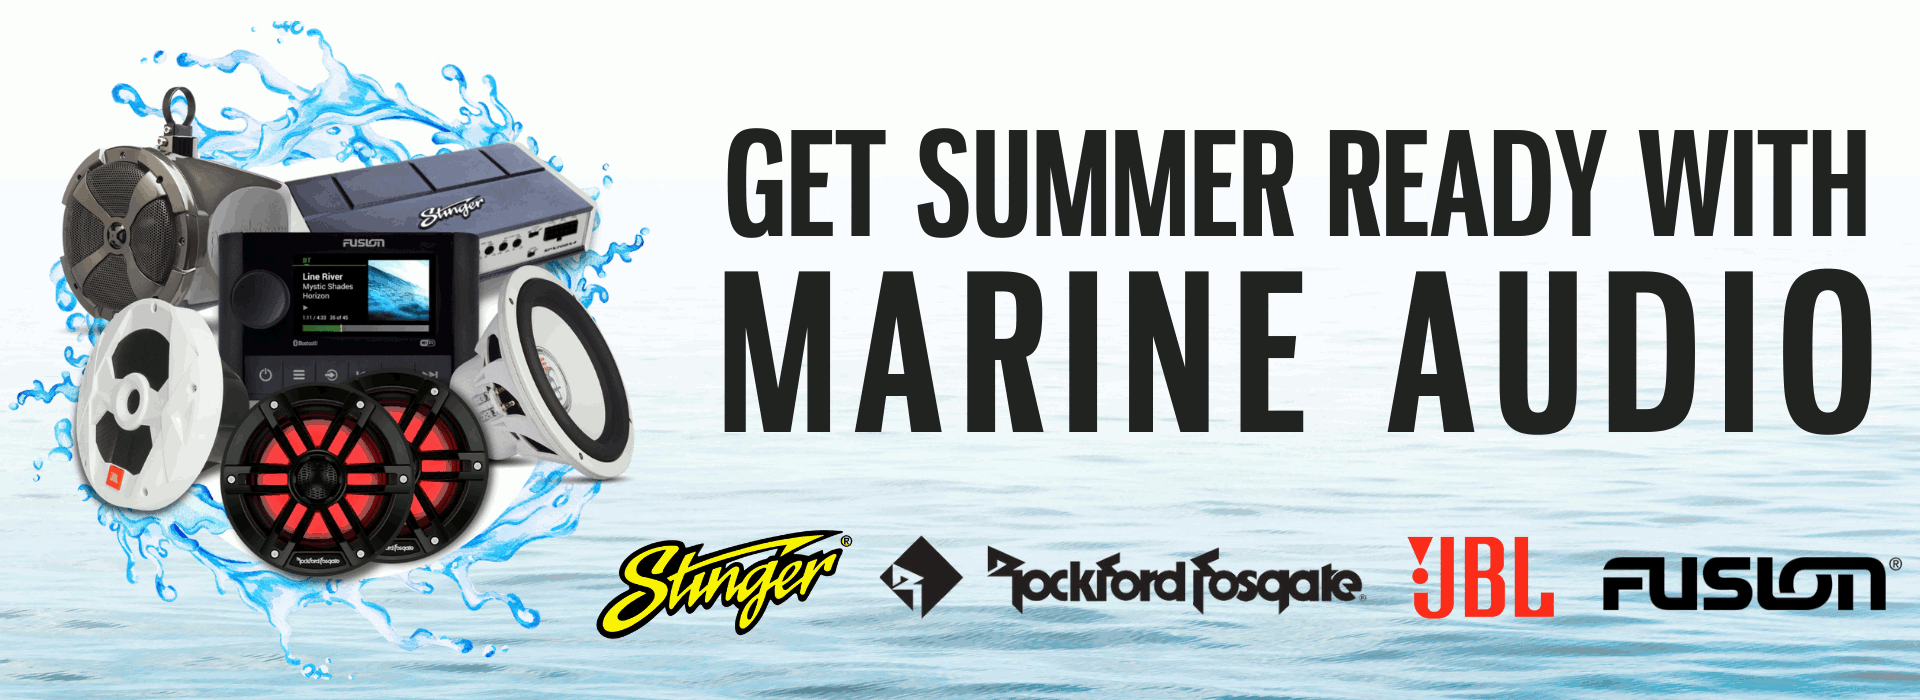 Get ready for summer with marine audio